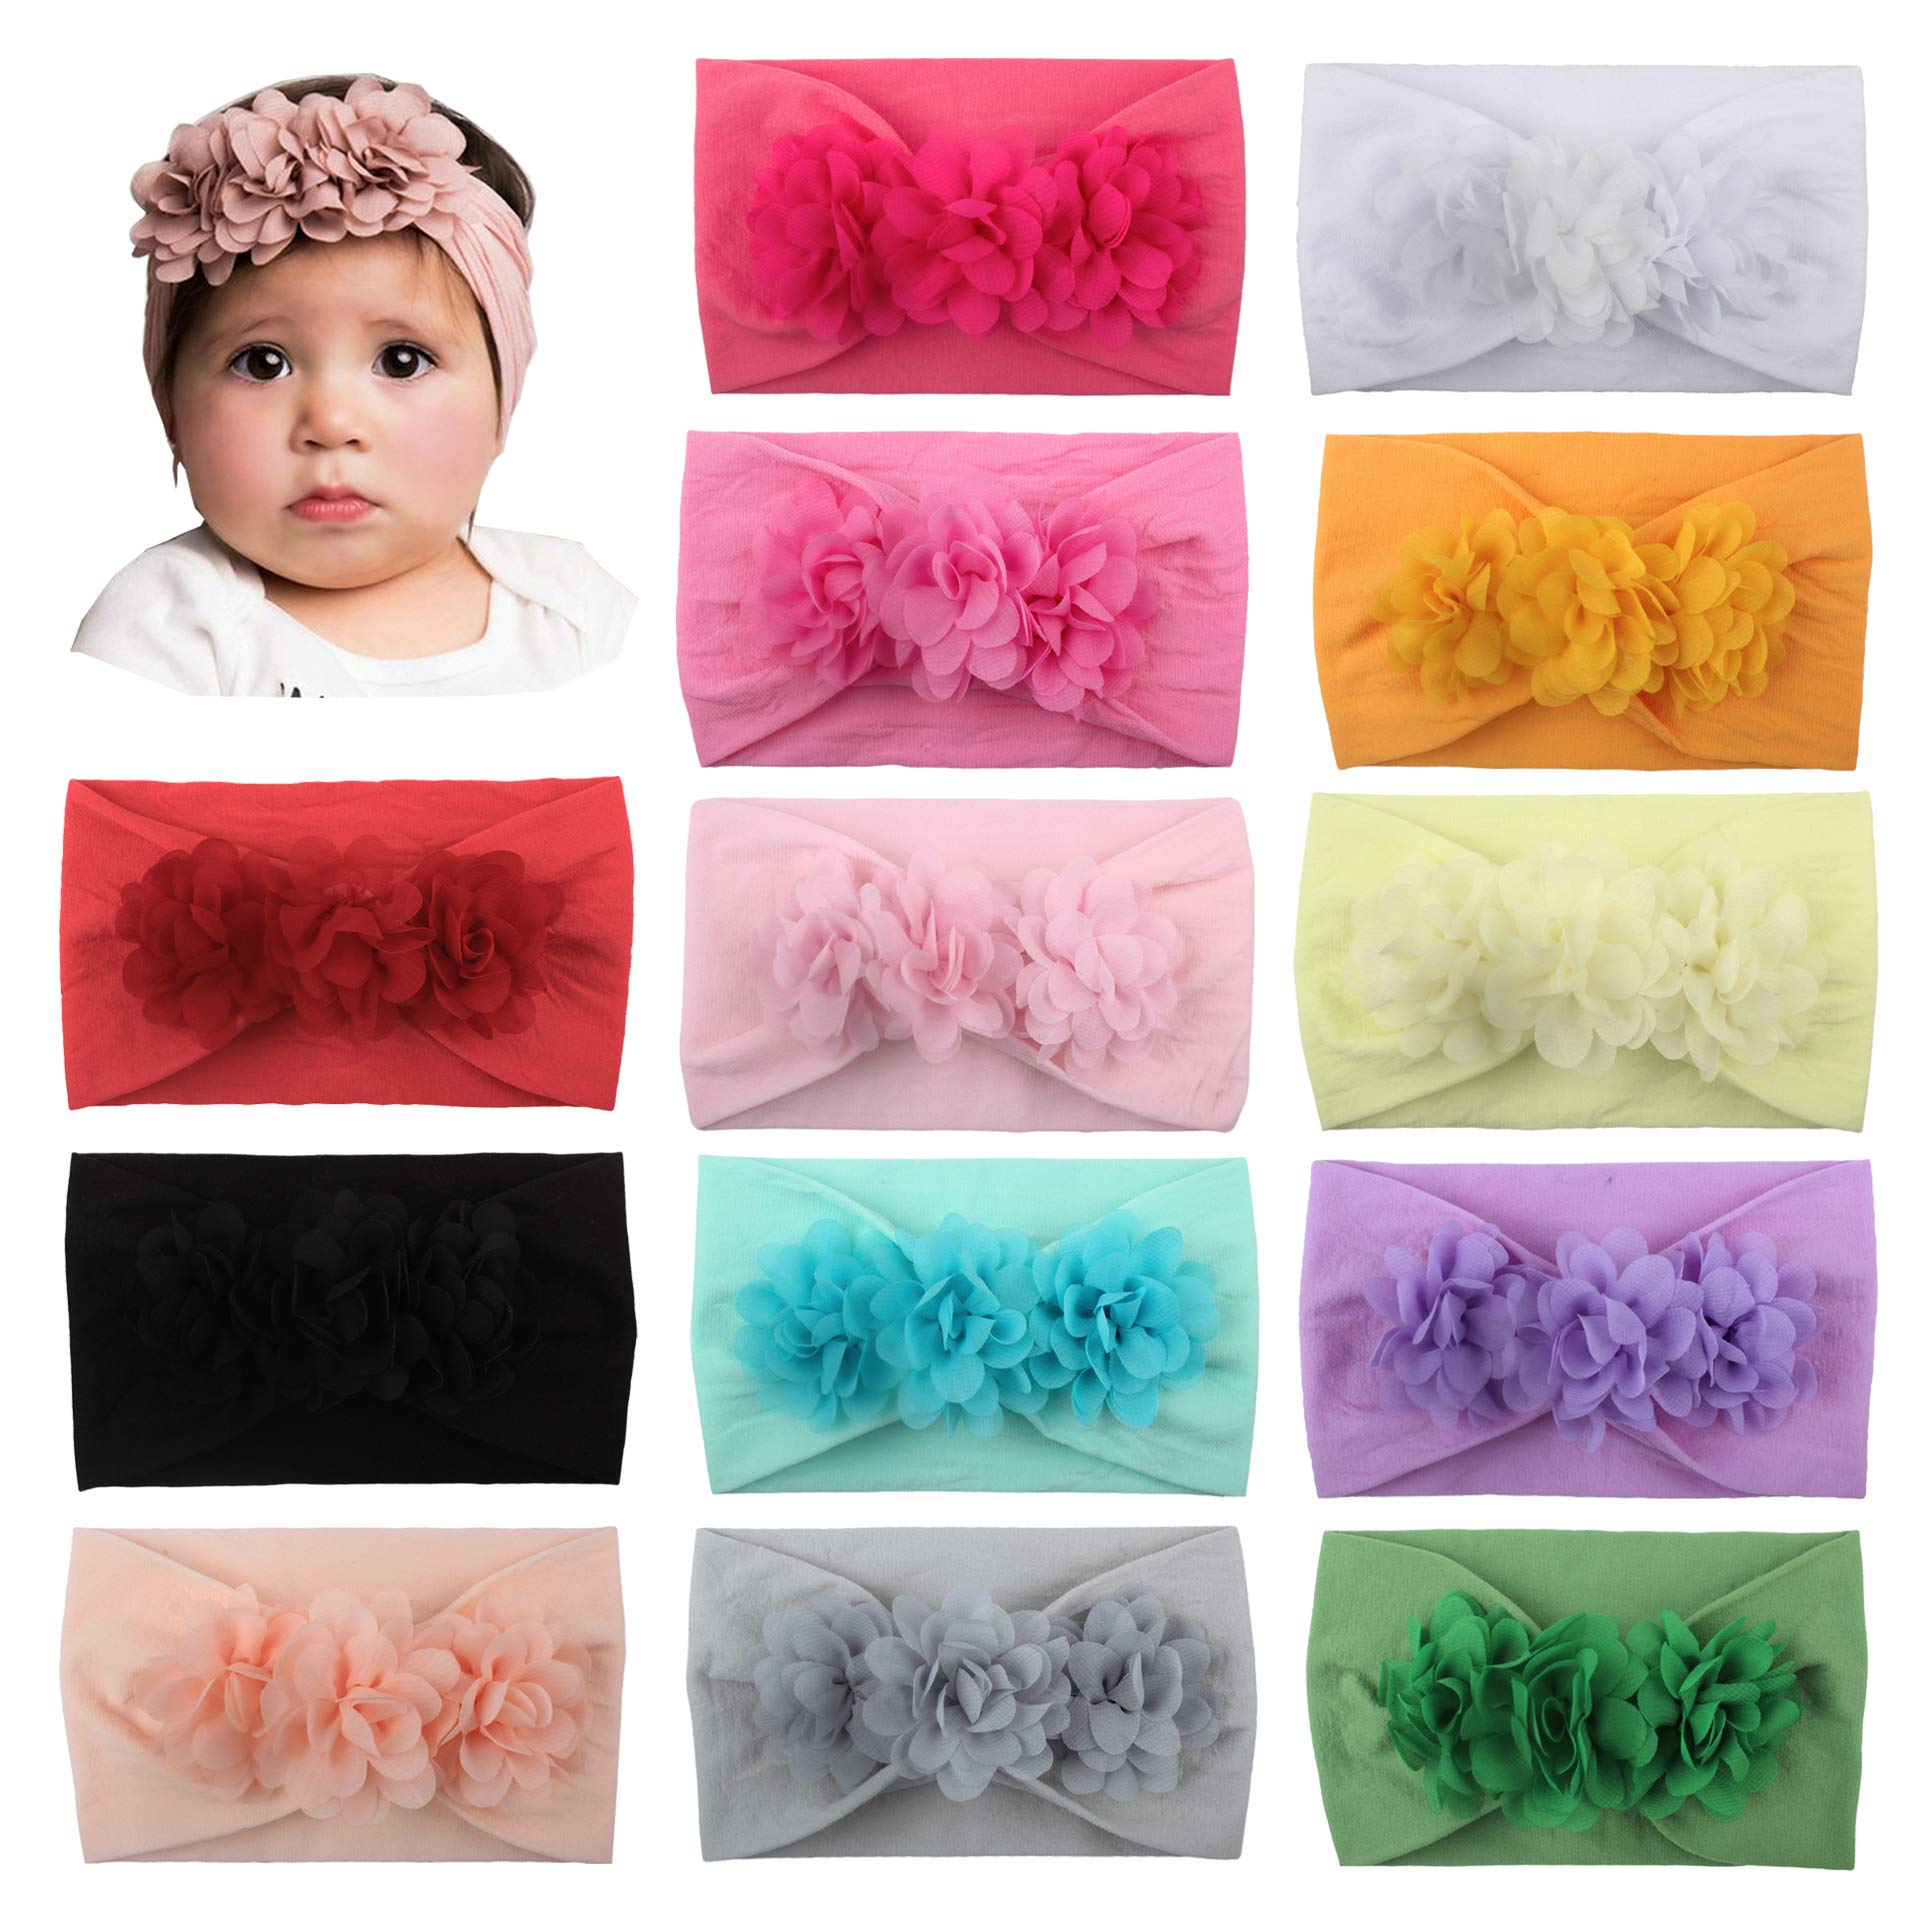 WZT Stretchy Knot Nylon Baby Headbands For Newborn Baby Girls Infant Toddlers Kids Bows Child Hair Accessories (13 Pcs Set)